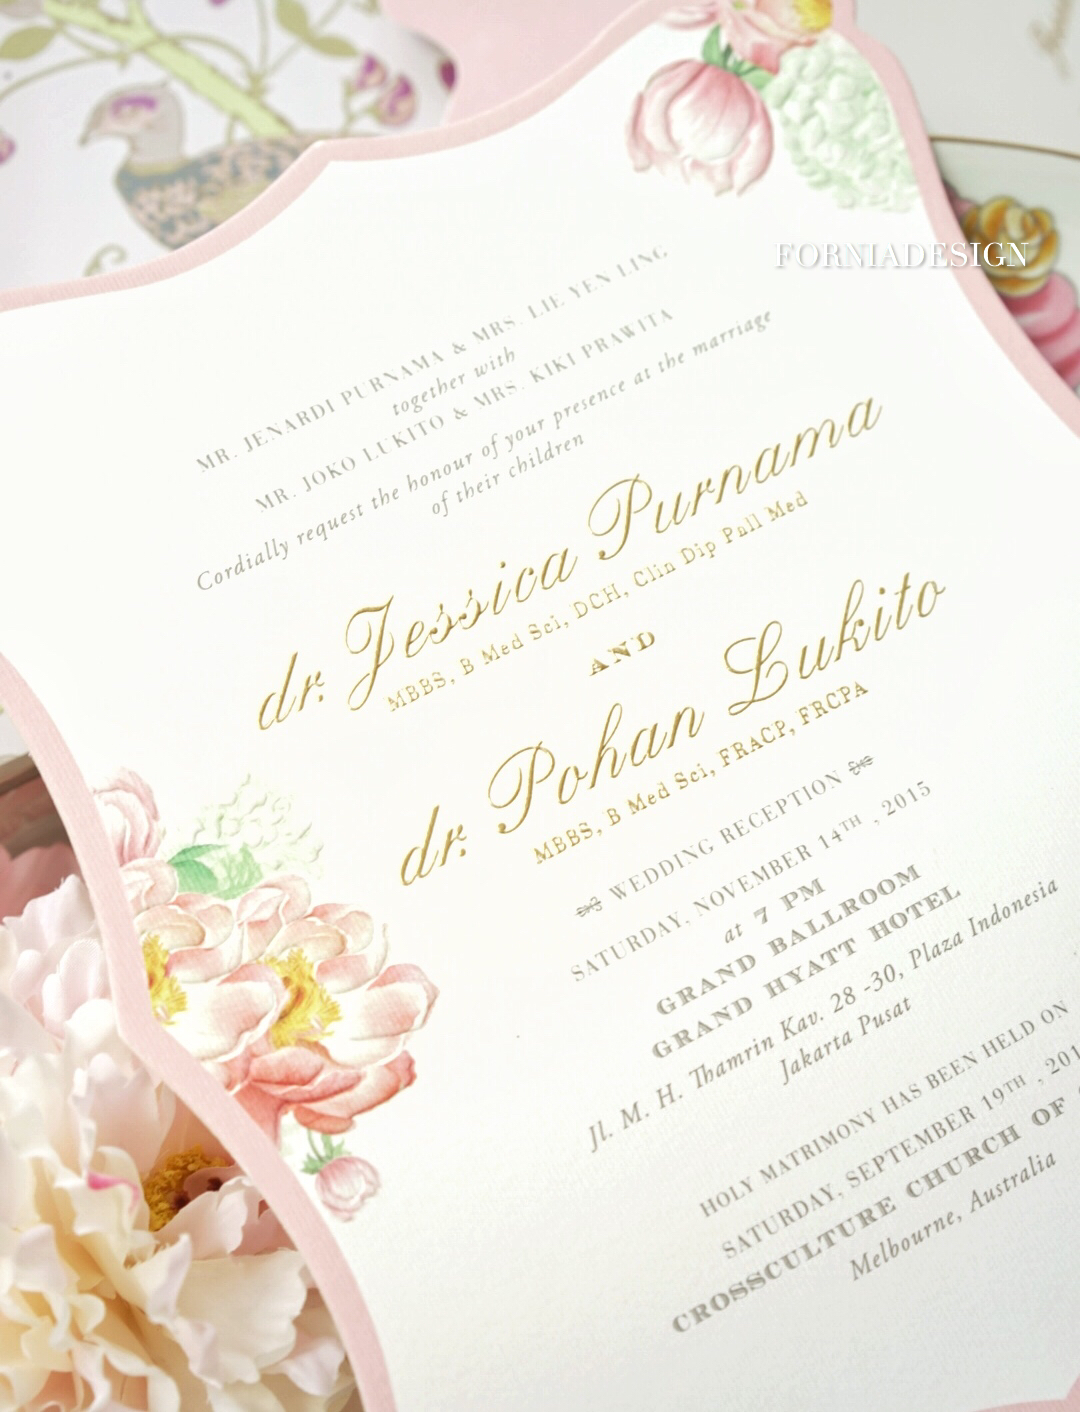 Jessica pohan by fornia design invitation bridestory stopboris Image collections